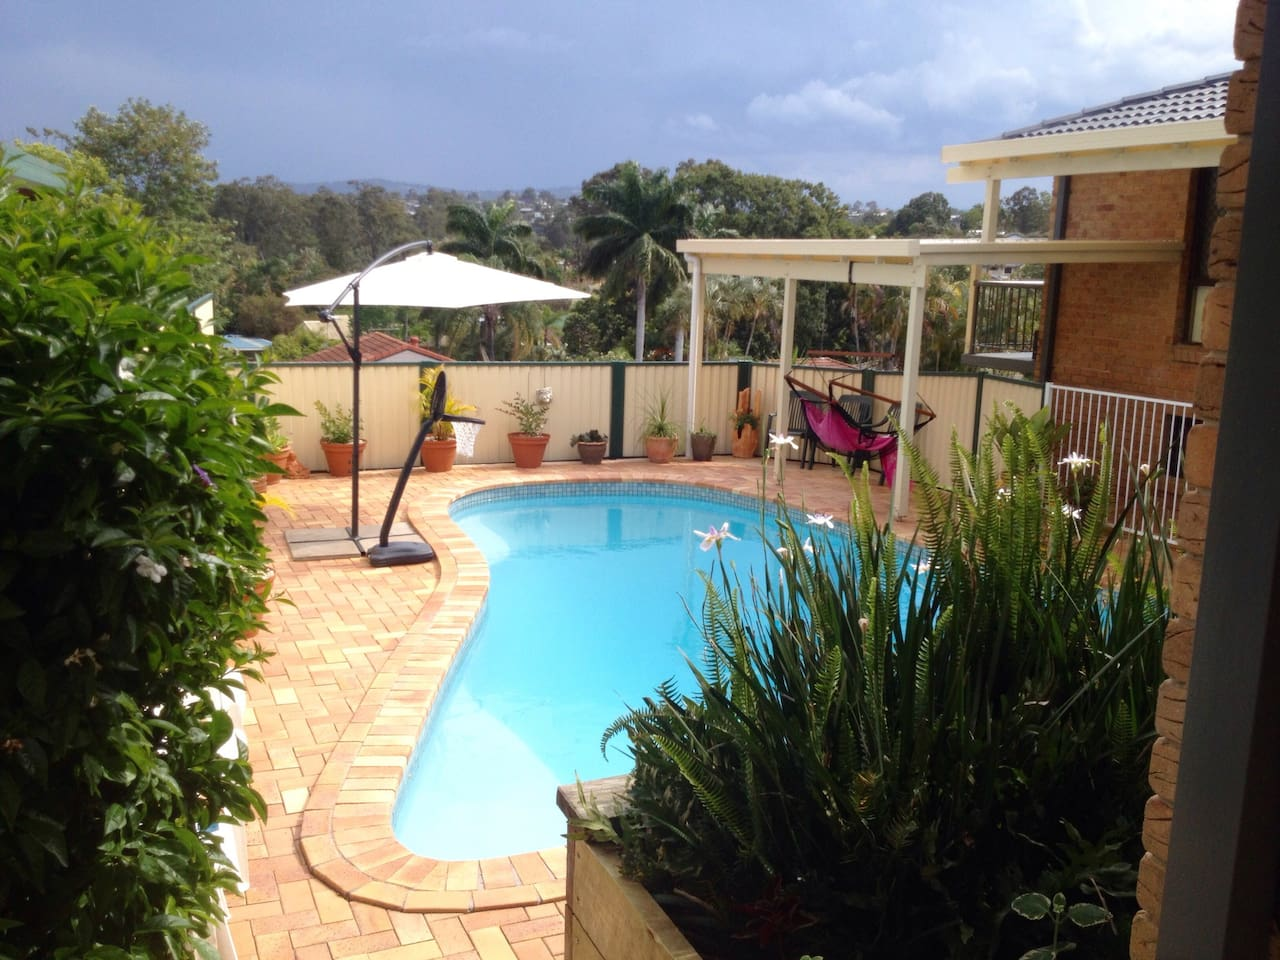 Cool down in this lovely refreshing pool after a day on one of the many golf courses close by or after a hard days cheering at the footy as the Metricon stadium is 5 minutes away.